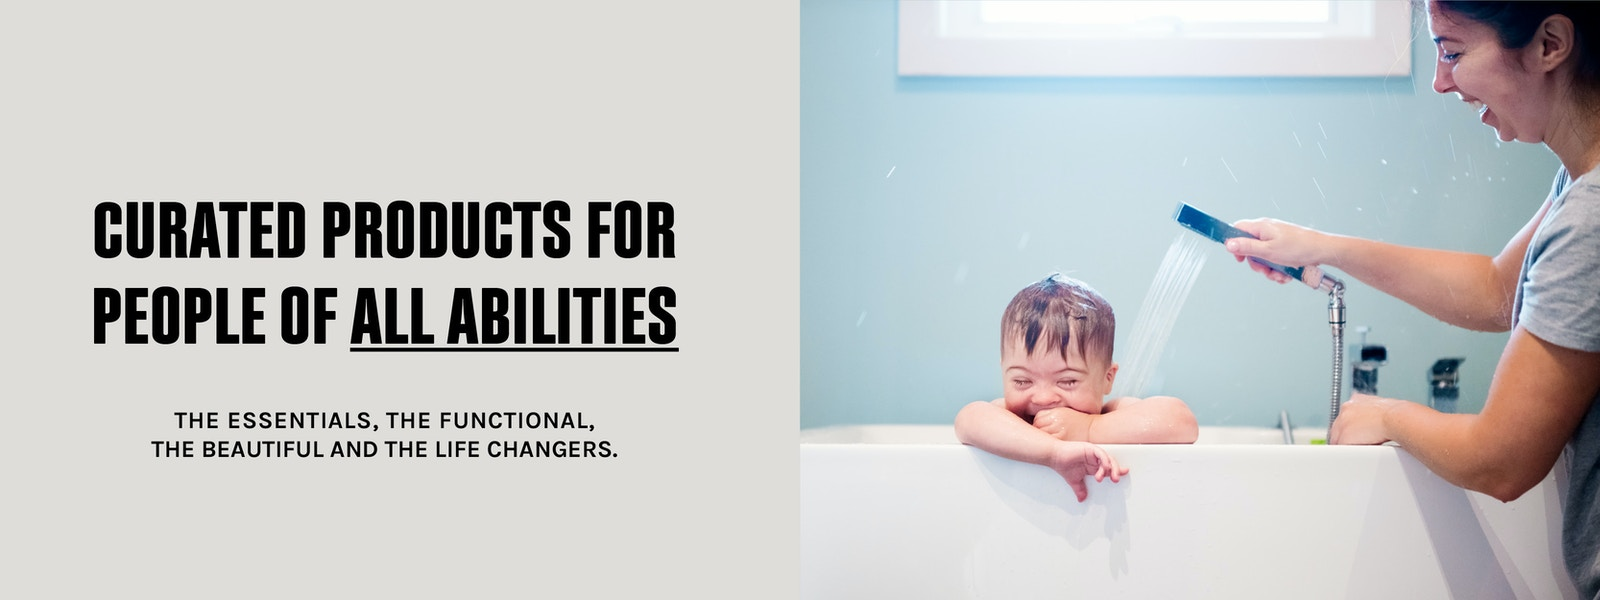 Curated products for people of all abilities